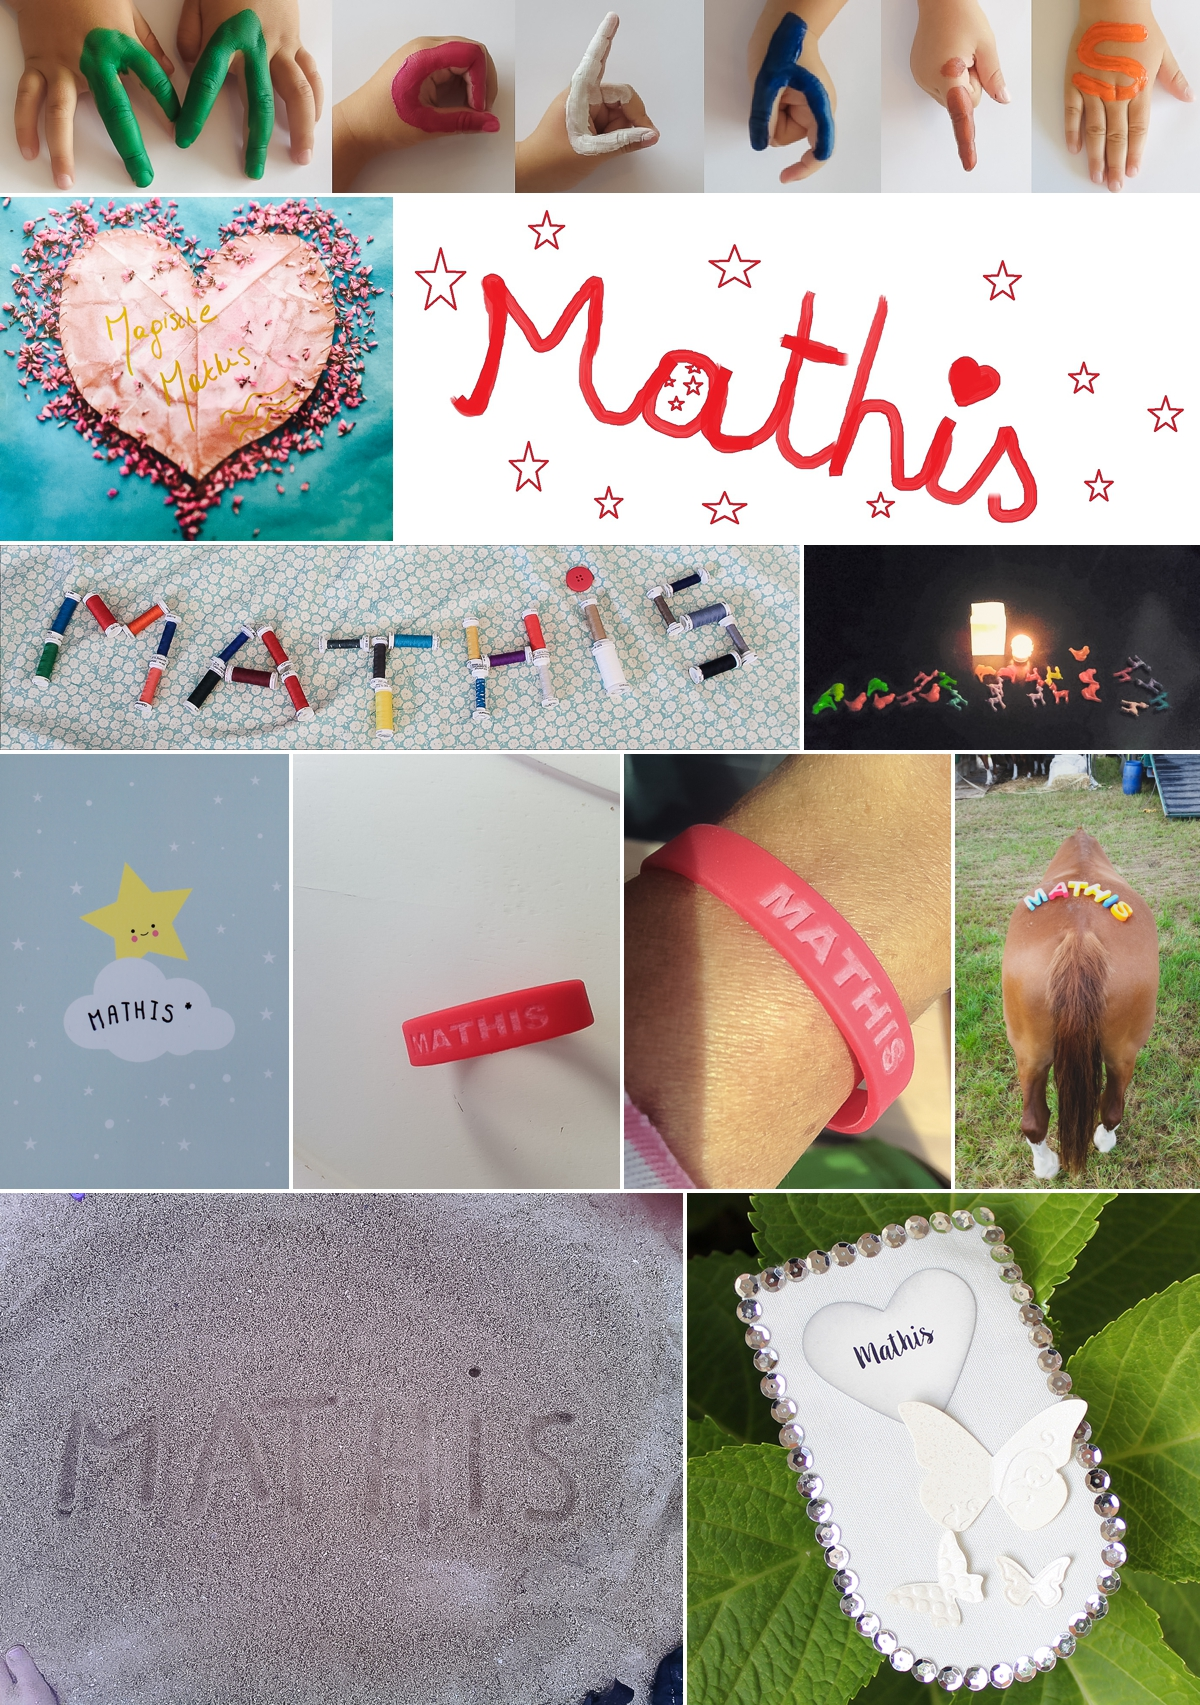 2015 Naamcollage Mathis 2